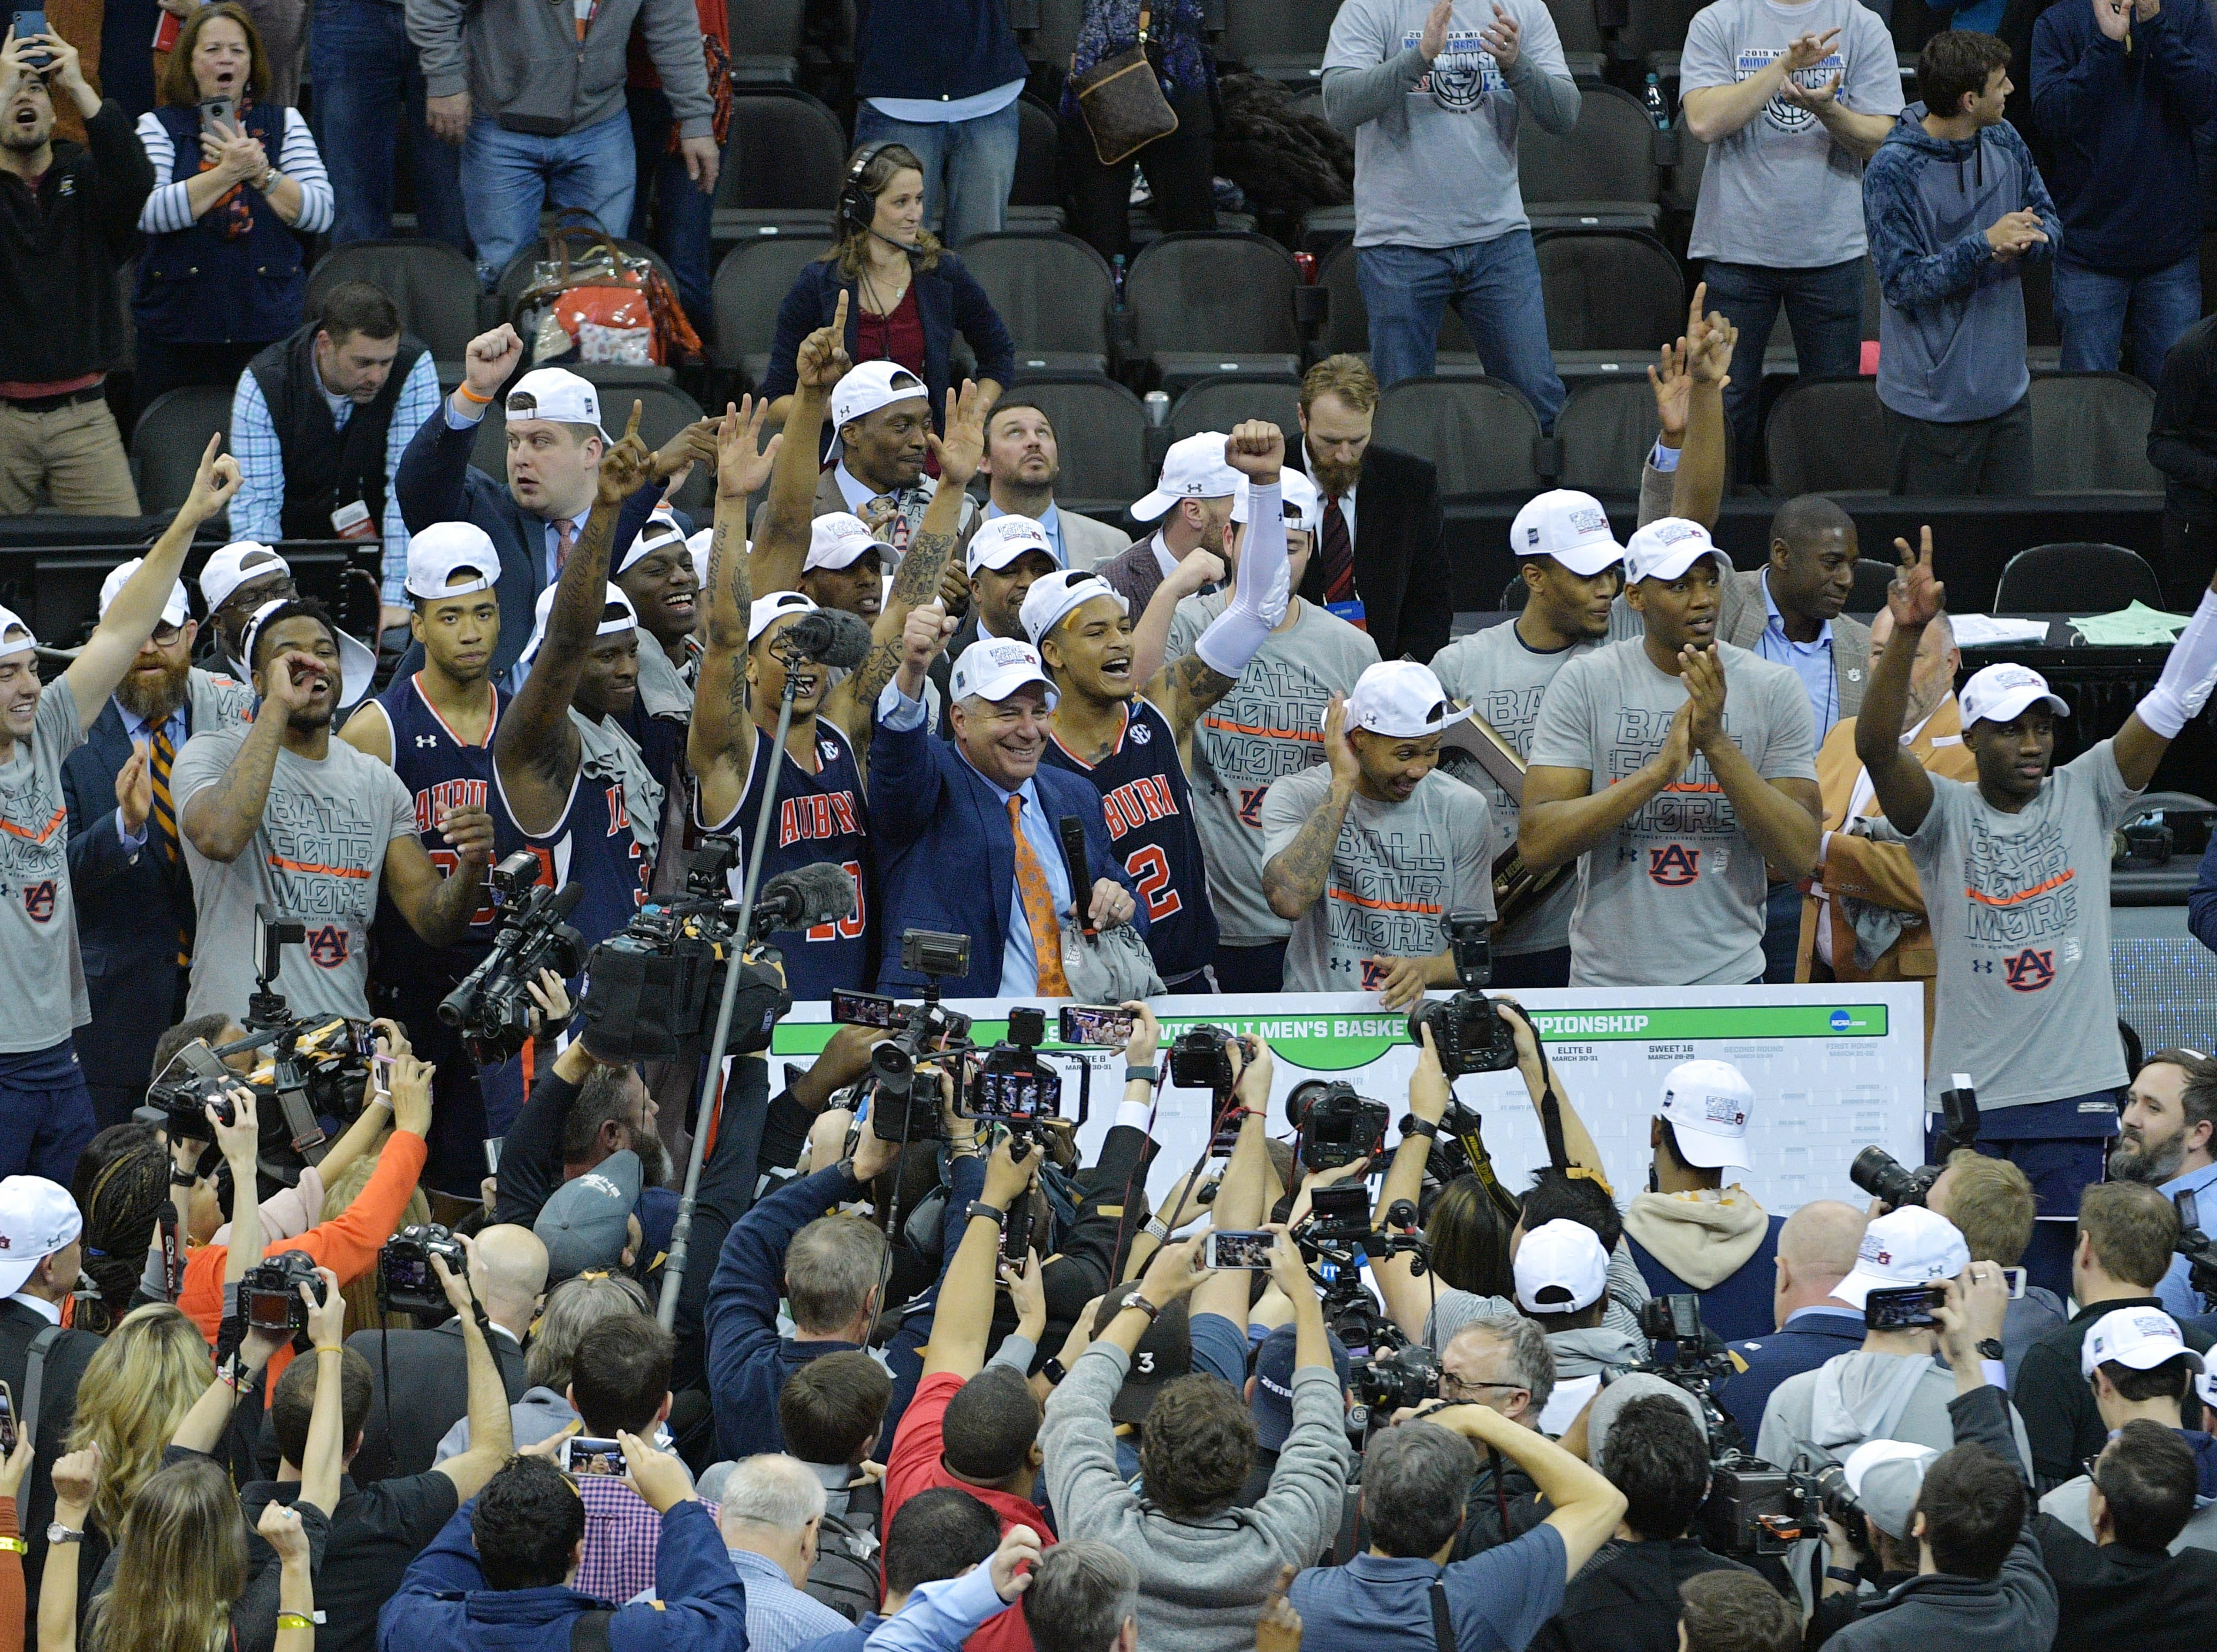 Mar 31, 2019; Kansas City, MO, United States; Auburn Tigers players and coach Bruce Peral celebrate after defeating the Kentucky Wildcats in the championship game of the midwest regional of the 2019 NCAA Tournament at Sprint Center. Mandatory Credit: Denny Medley-USA TODAY Sports